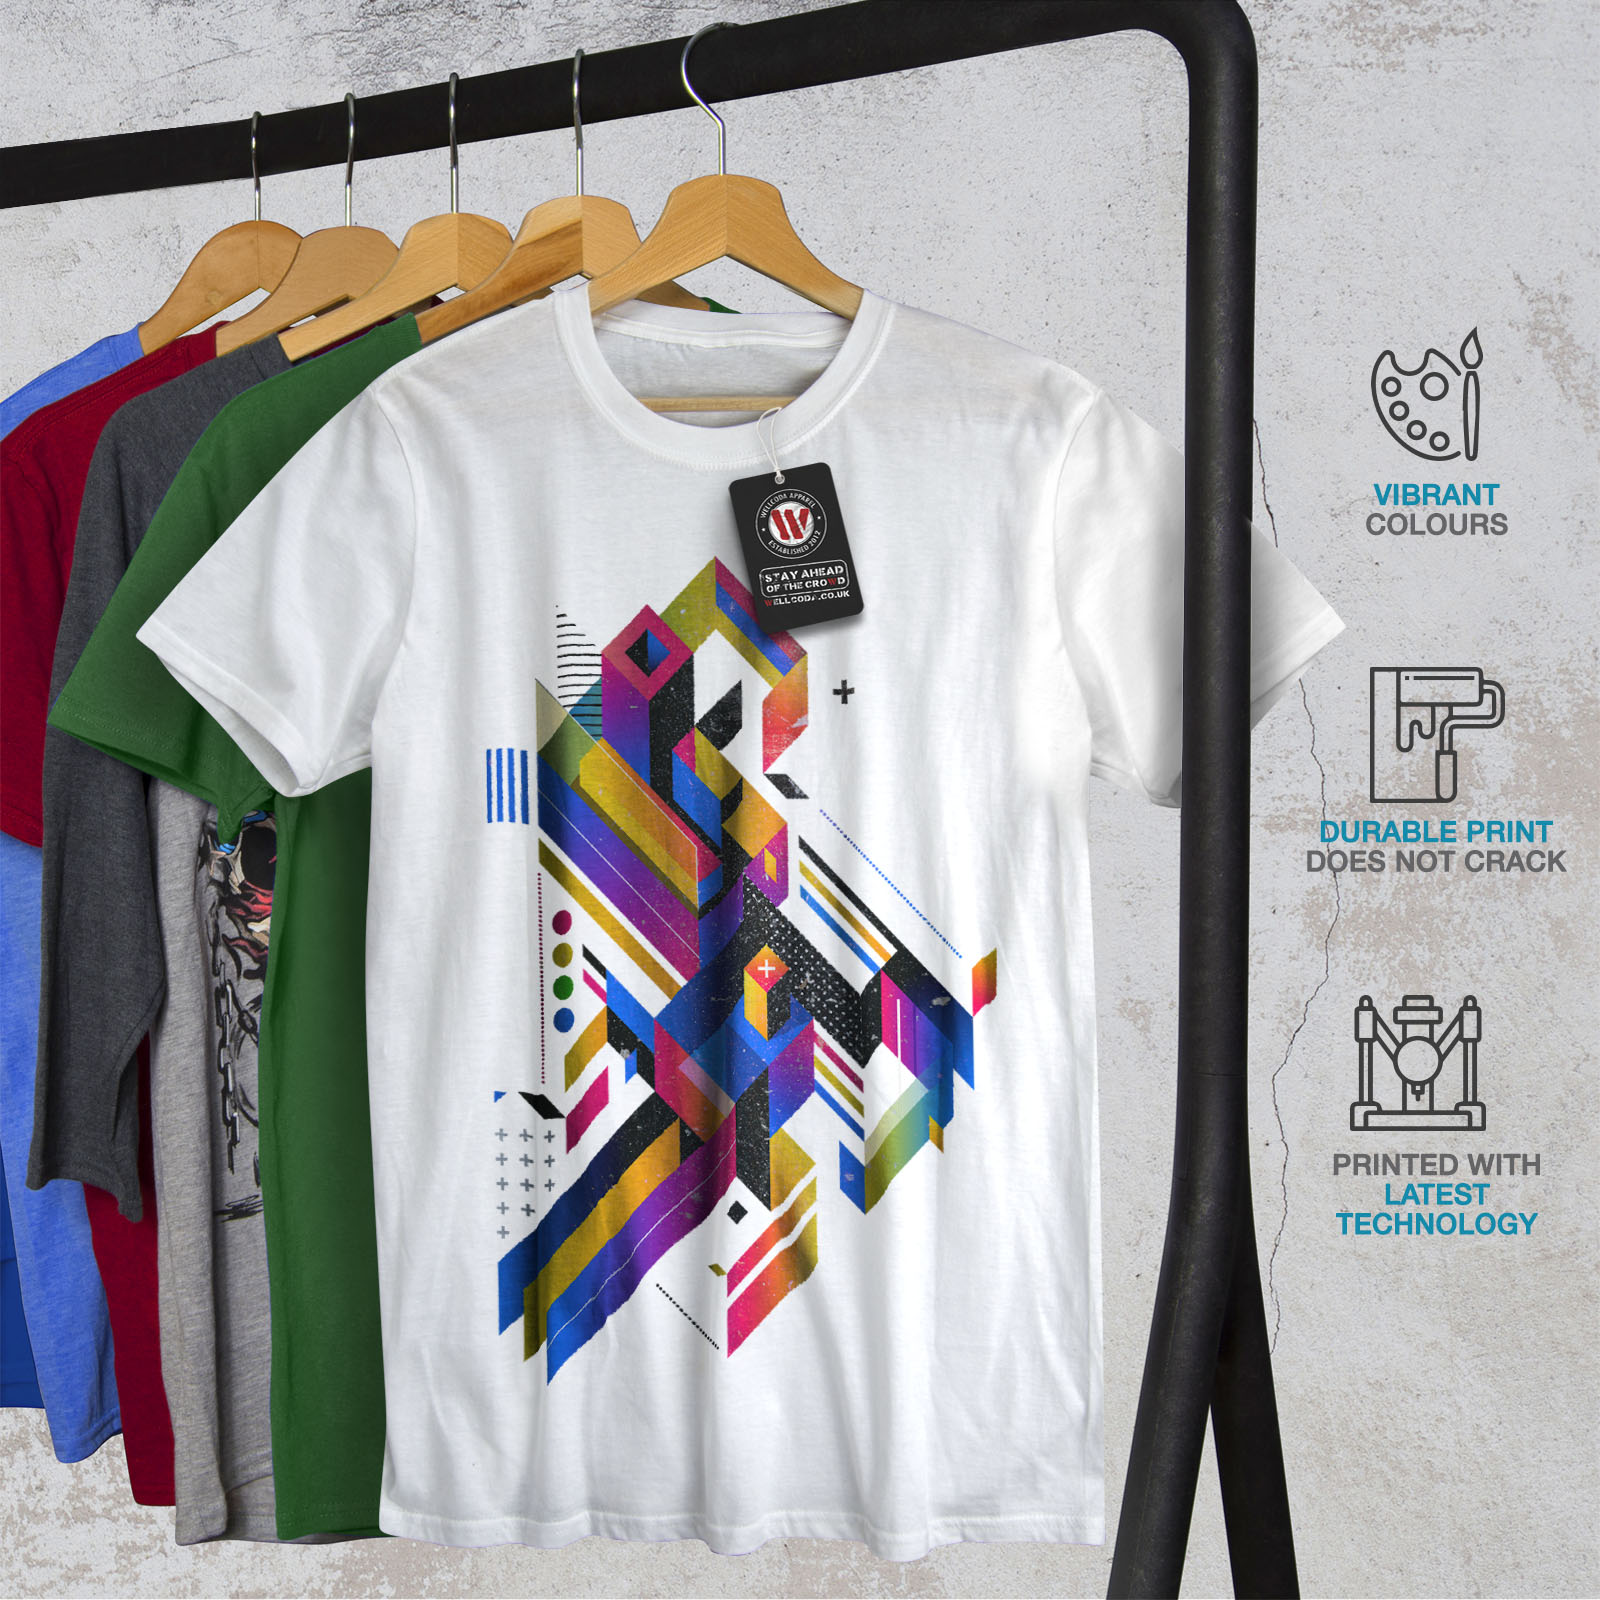 Wellcoda-Abstract-Maze-T-shirt-homme-Labyrinthe-conception-graphique-imprime-Tee miniature 12